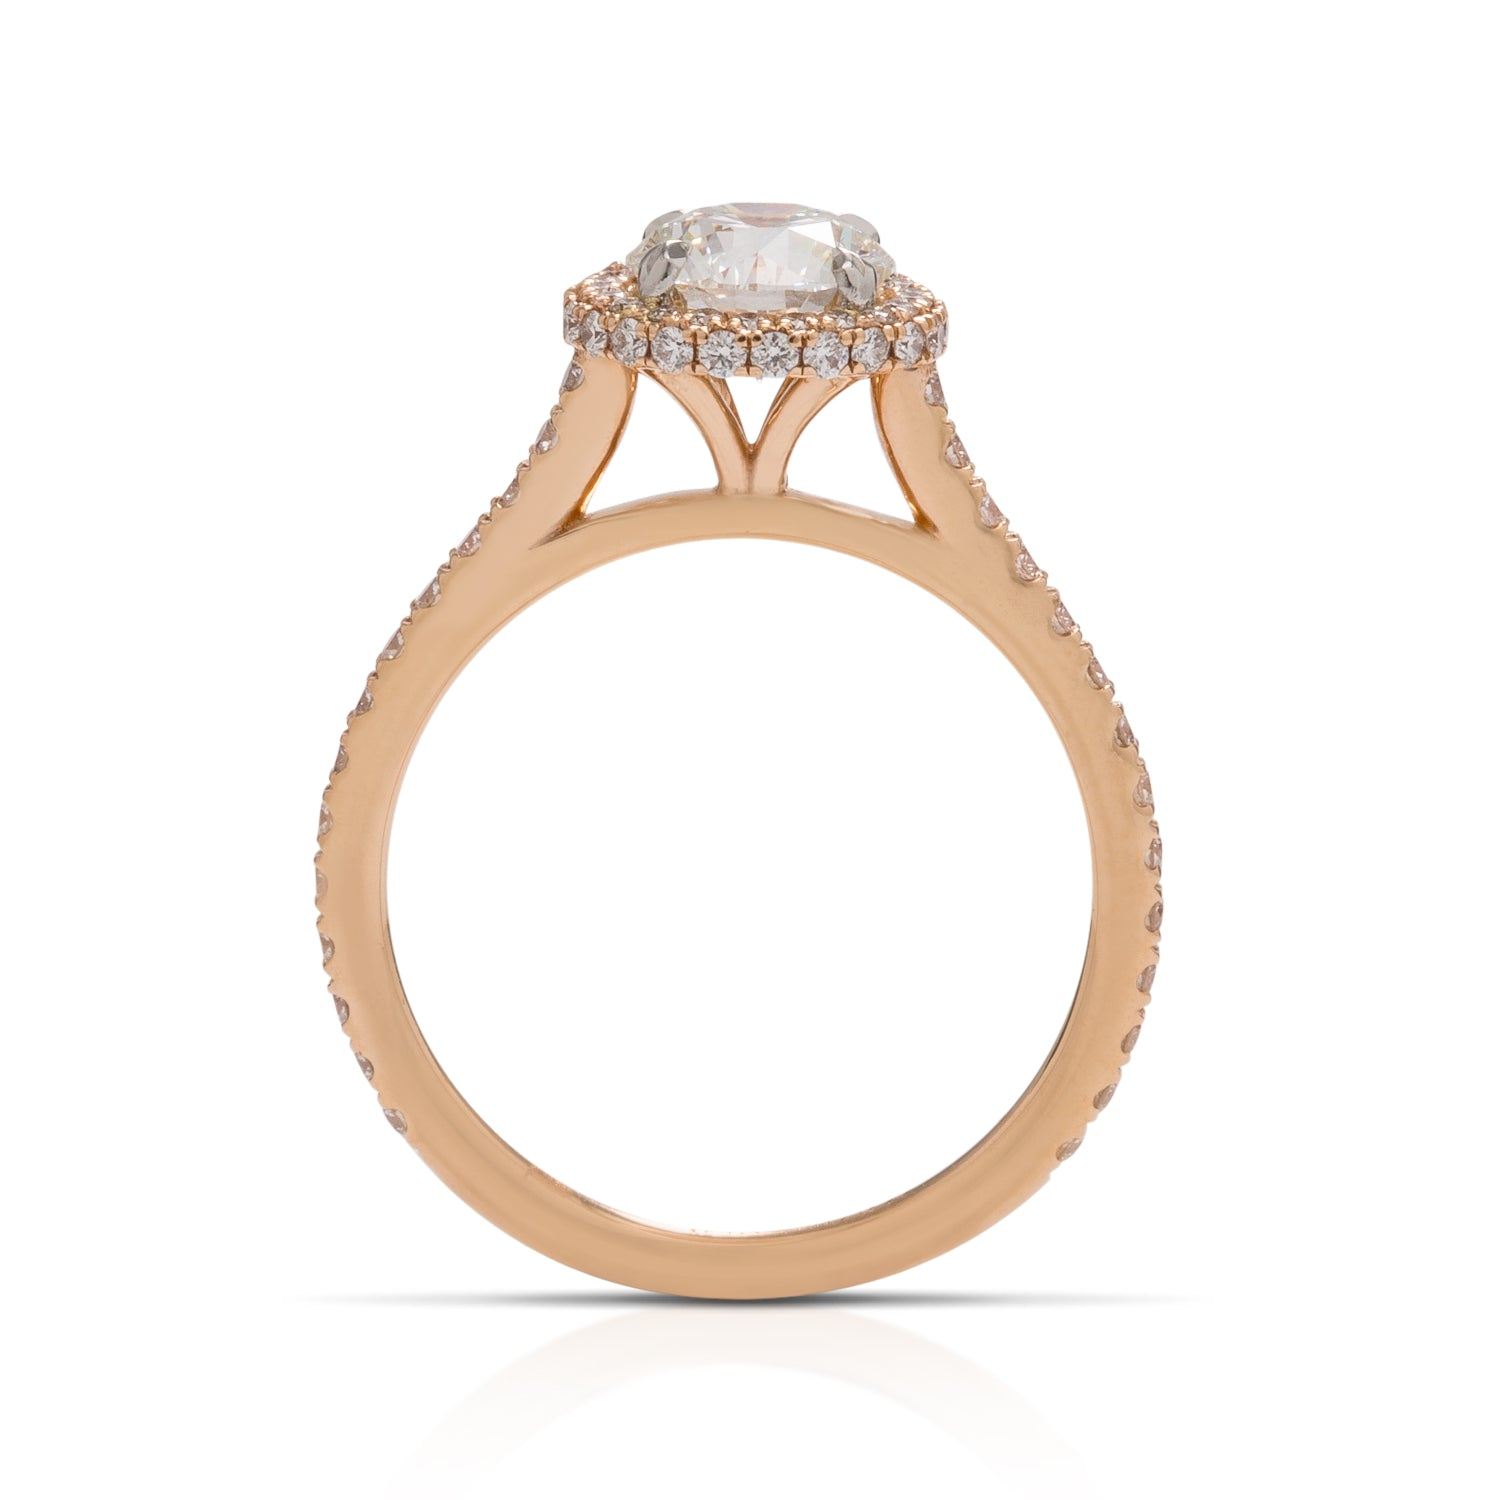 18k Rose Gold 1.02ct Diamond Ring - Charles Koll Jewellers